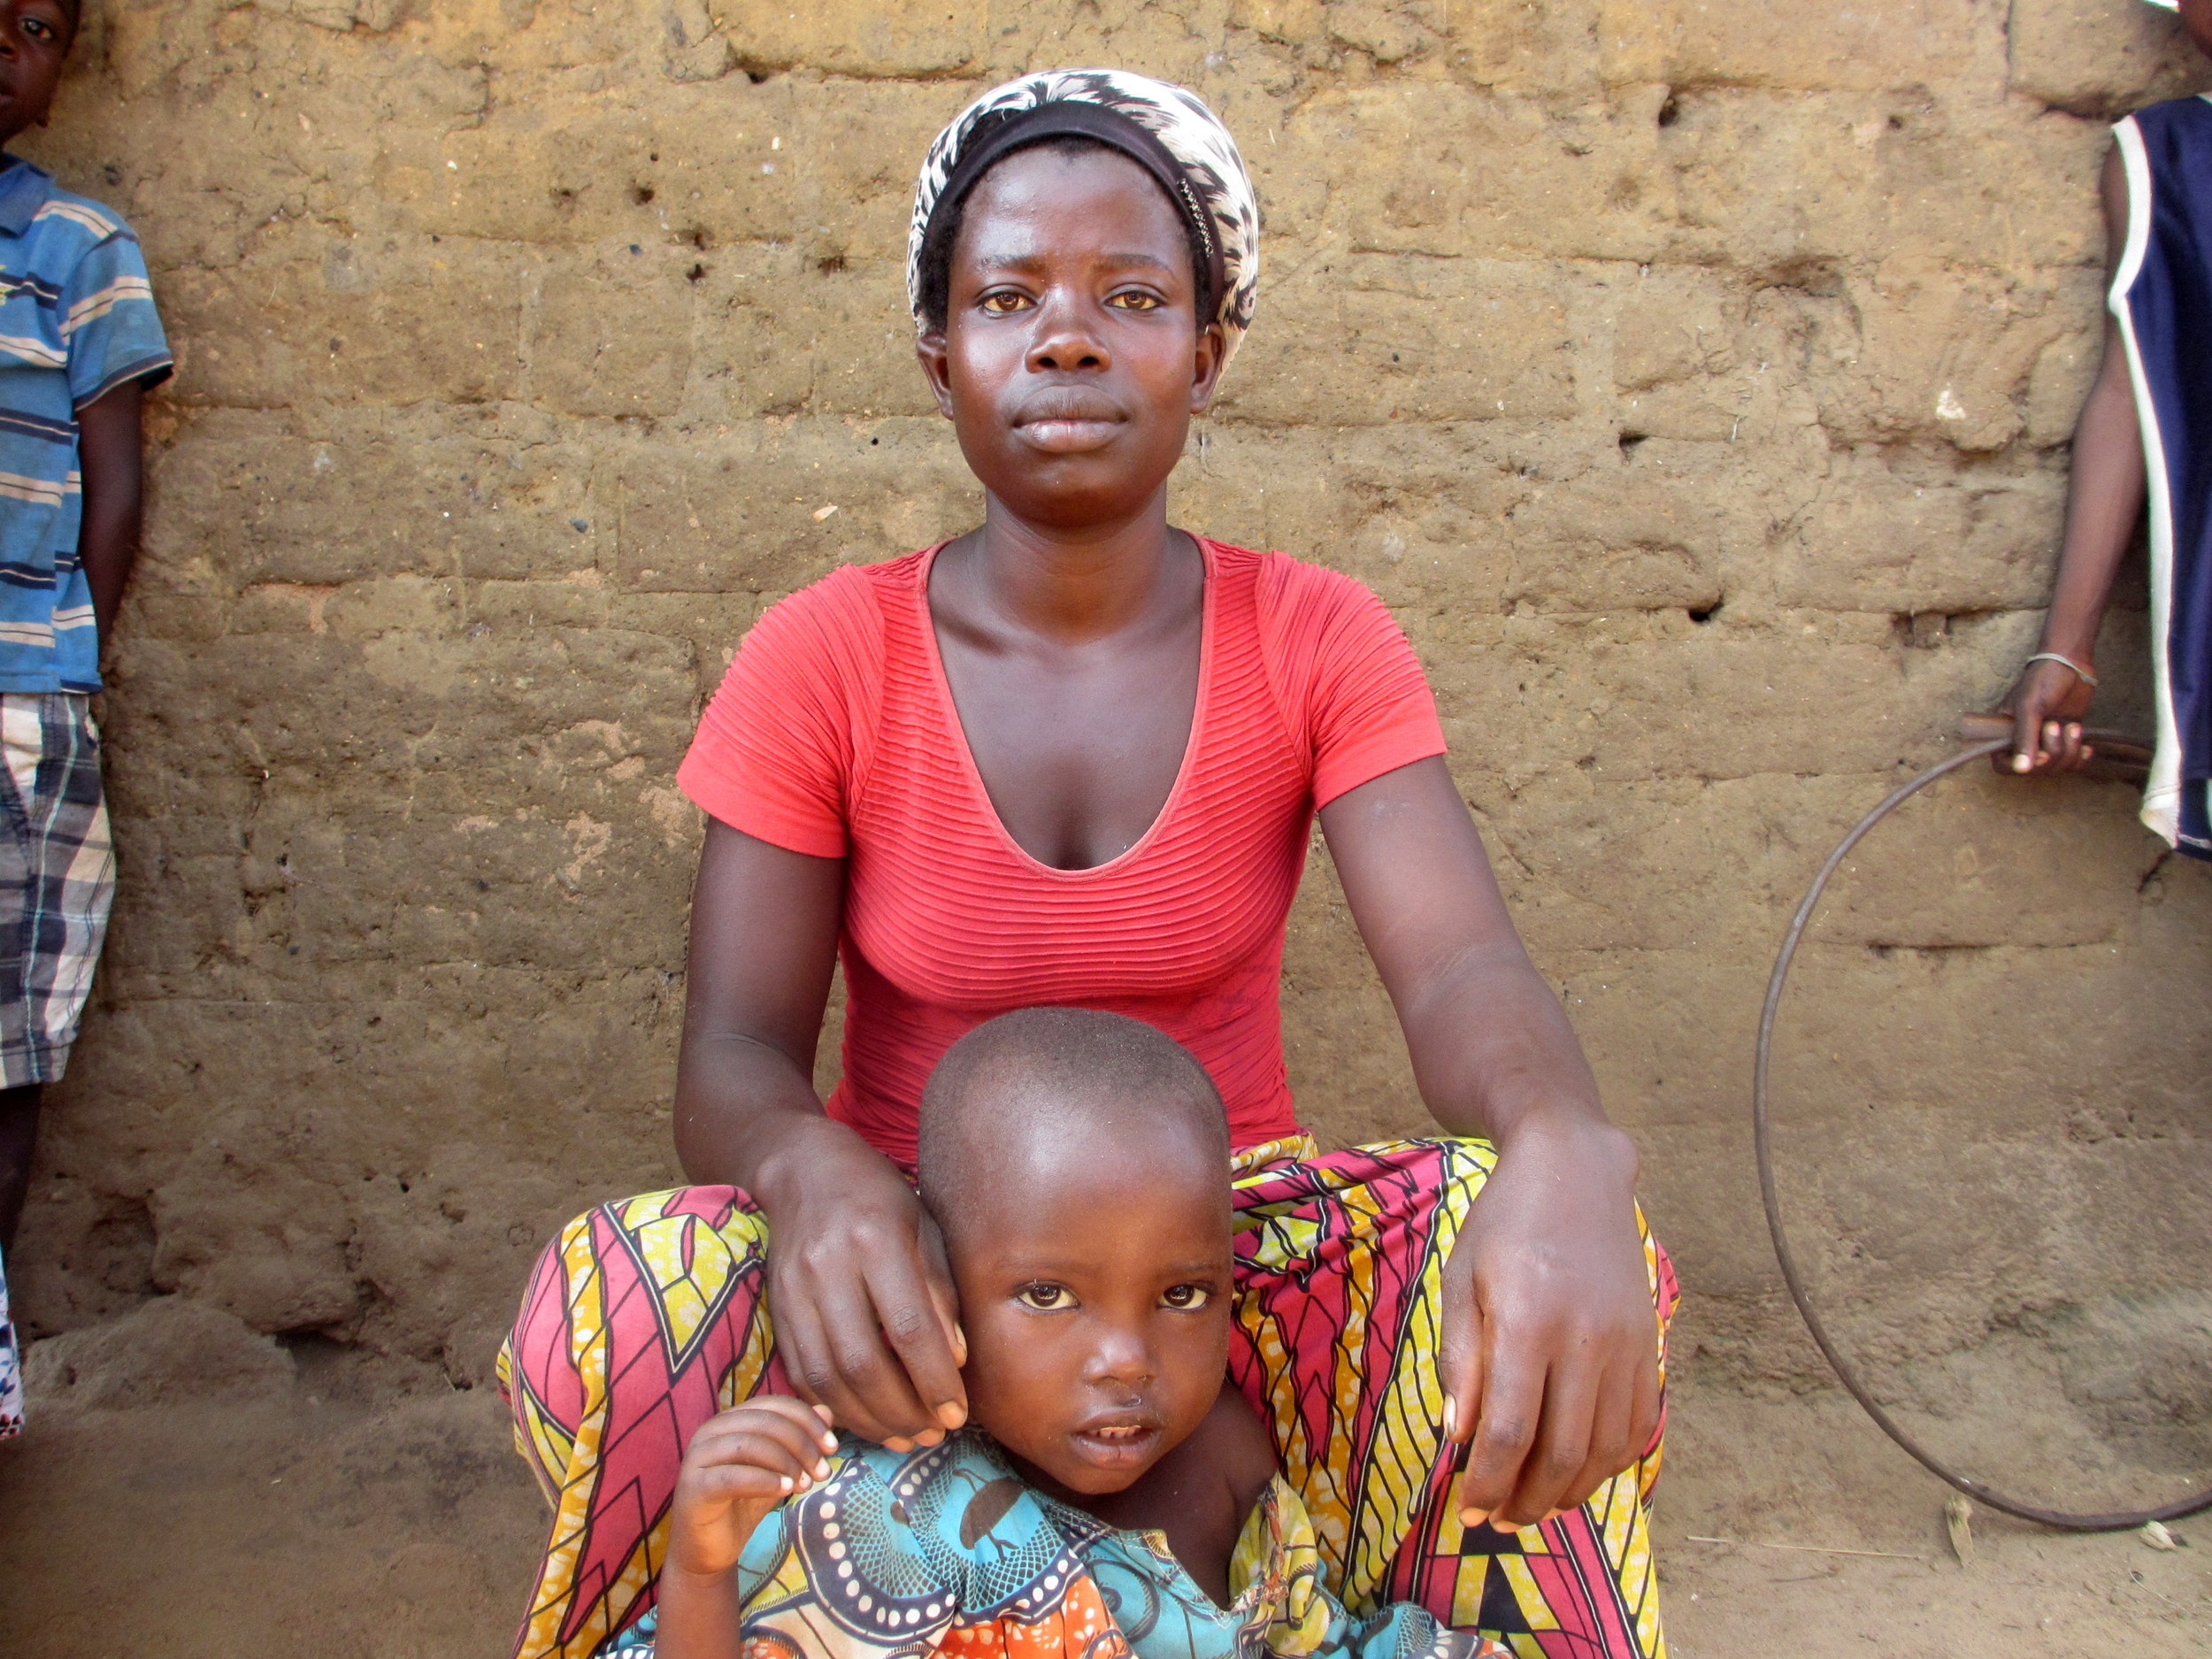 As of April 4, 2016, donor governments had provided an abysmal 2 percent of the funds needed to assist Burundian refugees in the DRC. More money is urgently needed - both to meet refugees' basic needs, and to ensure they are protected from abuse.